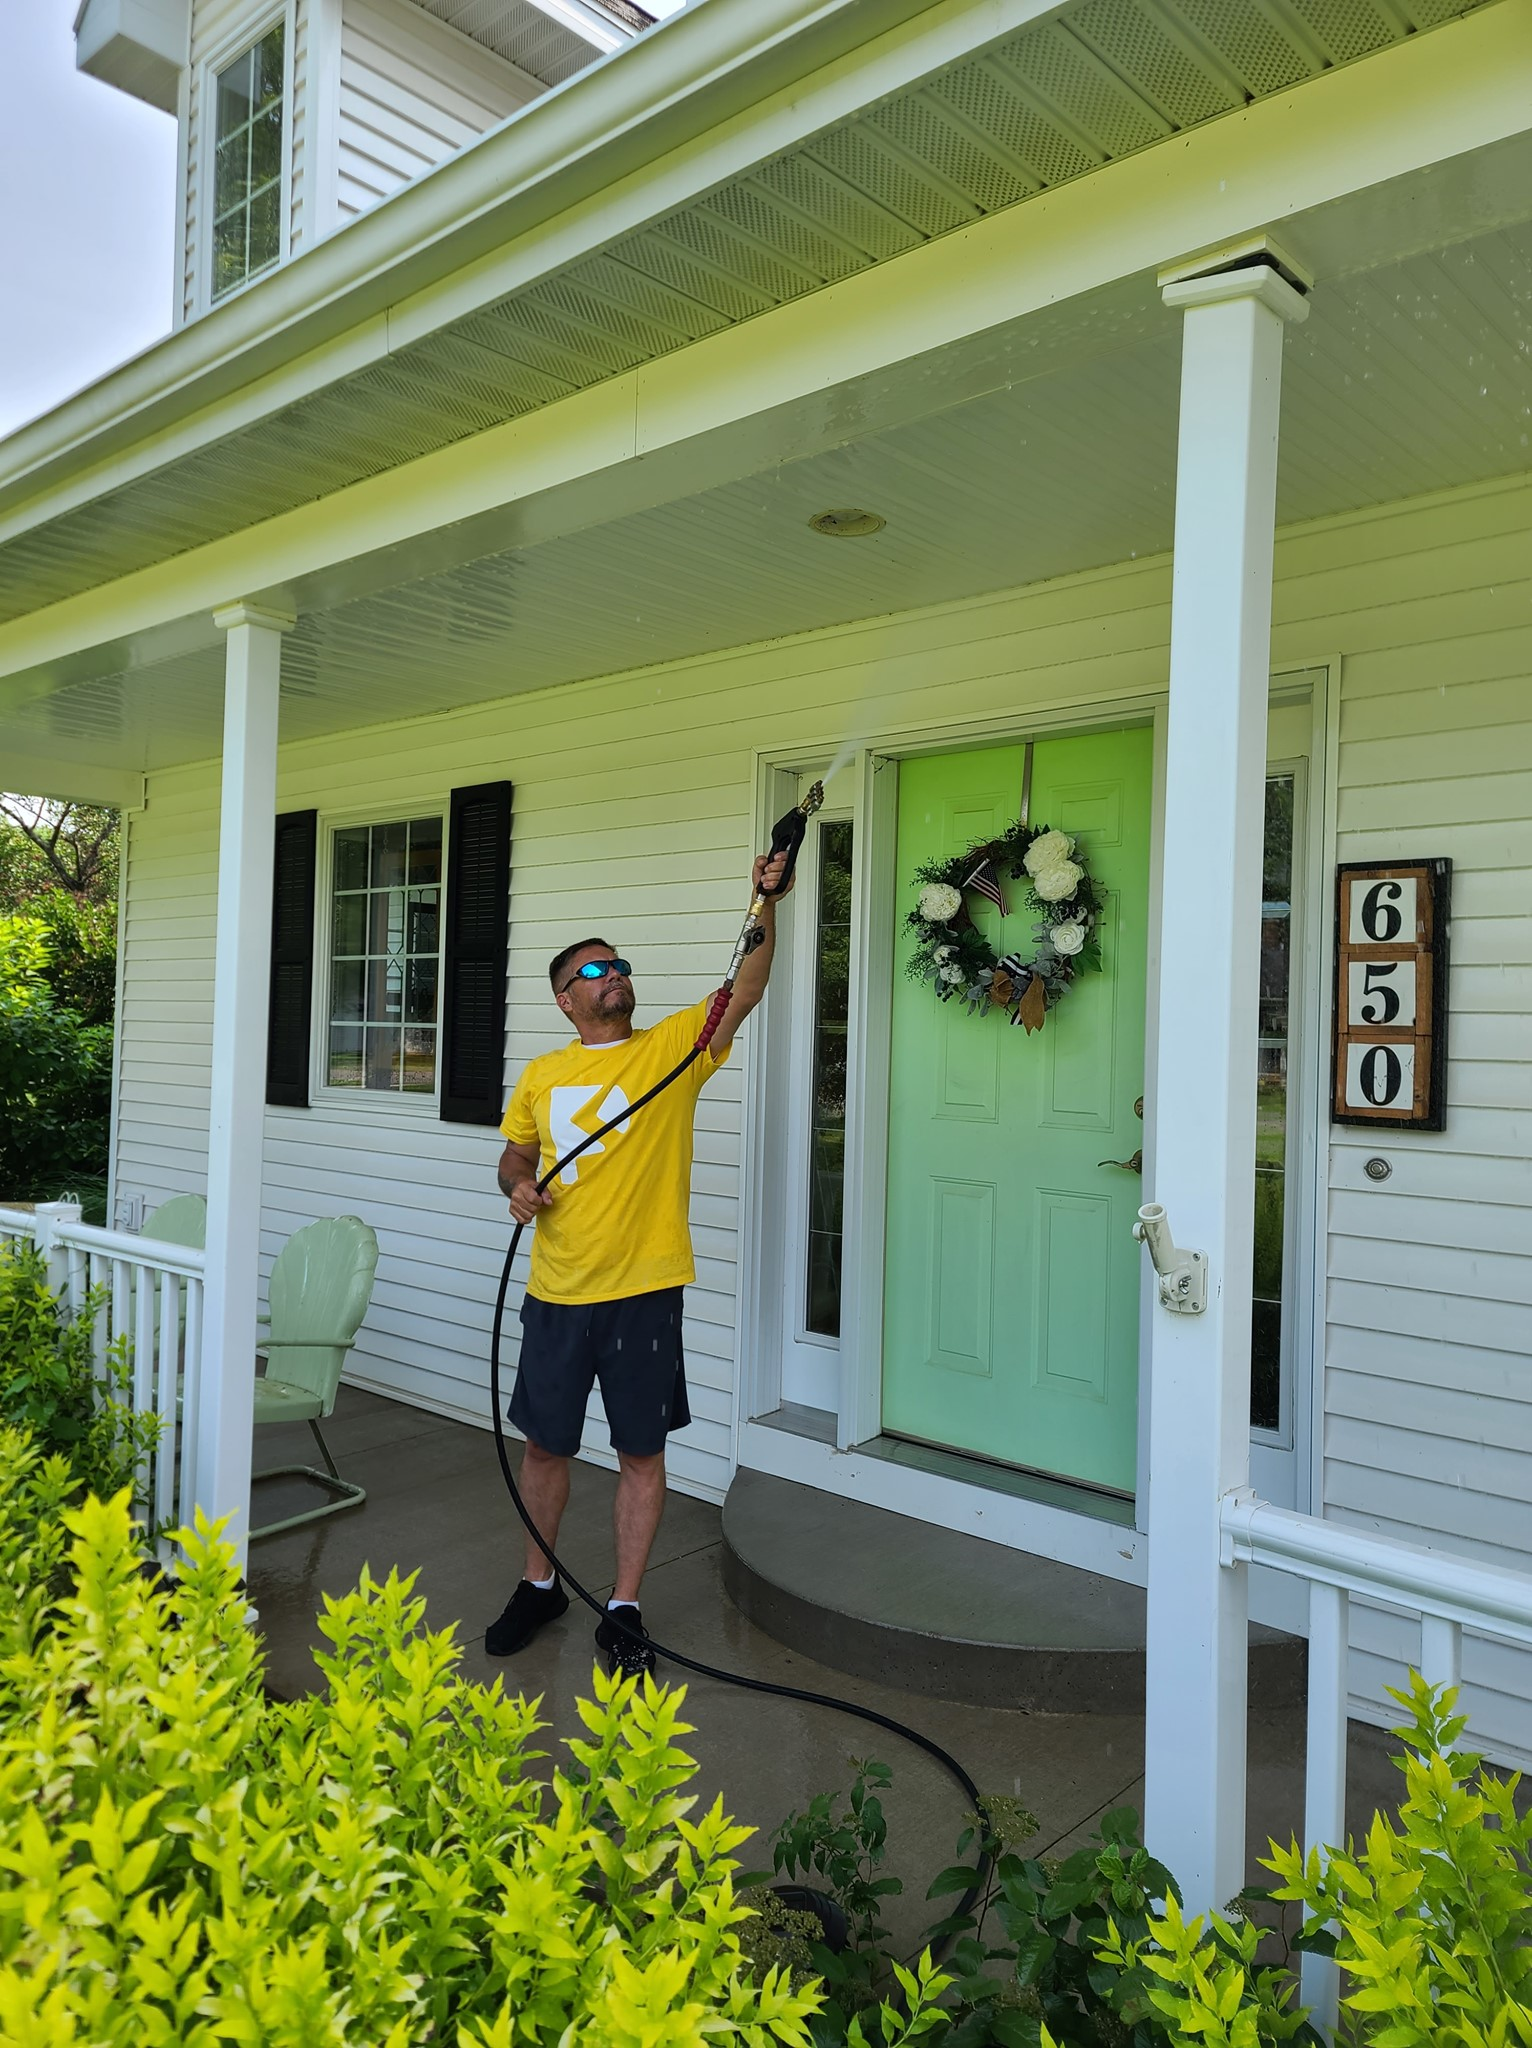 Photo number 12 of Paneless Window Cleaning LLC's best work performing a null job